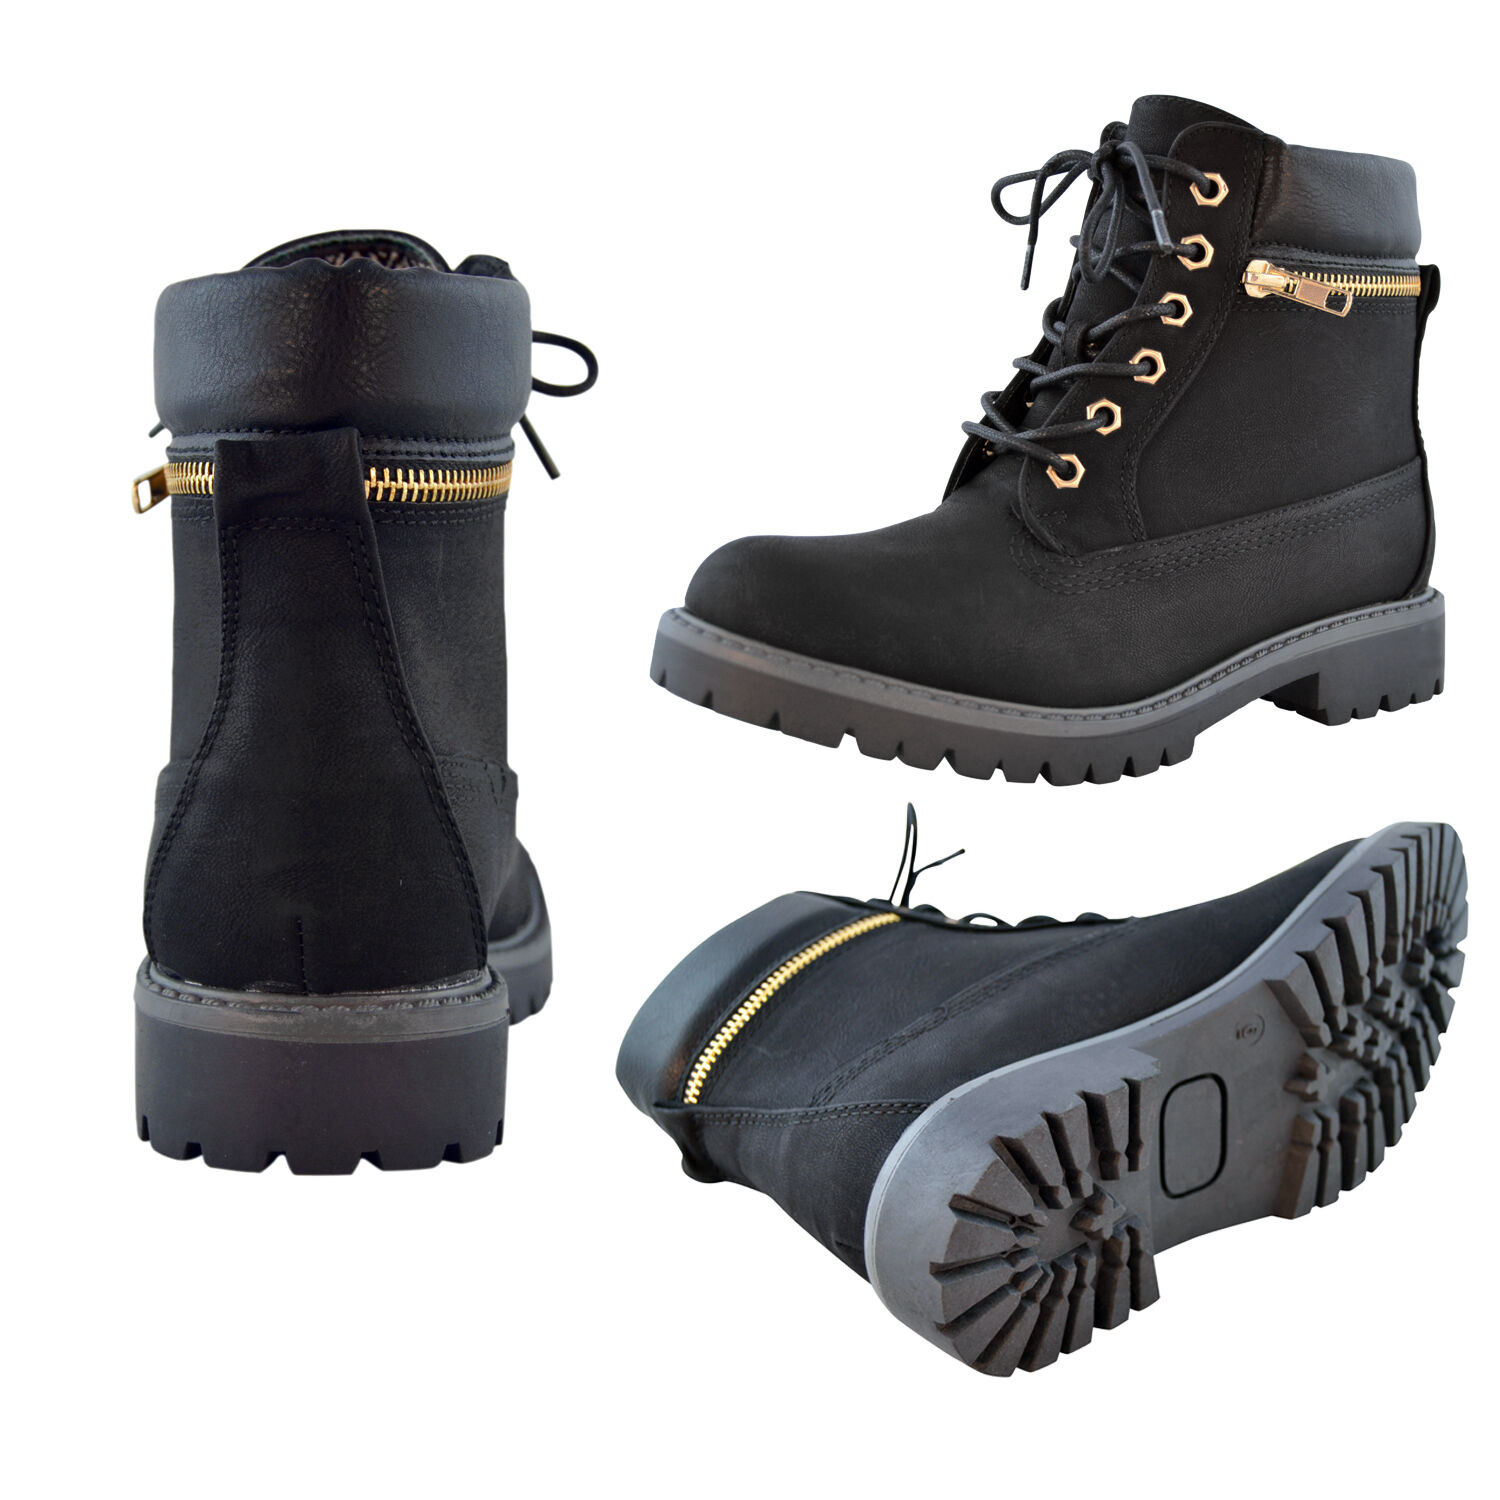 Women's Faux Leather Zipper Trim Ankle Boots Lace Up Hiking Casual Shoes Camel